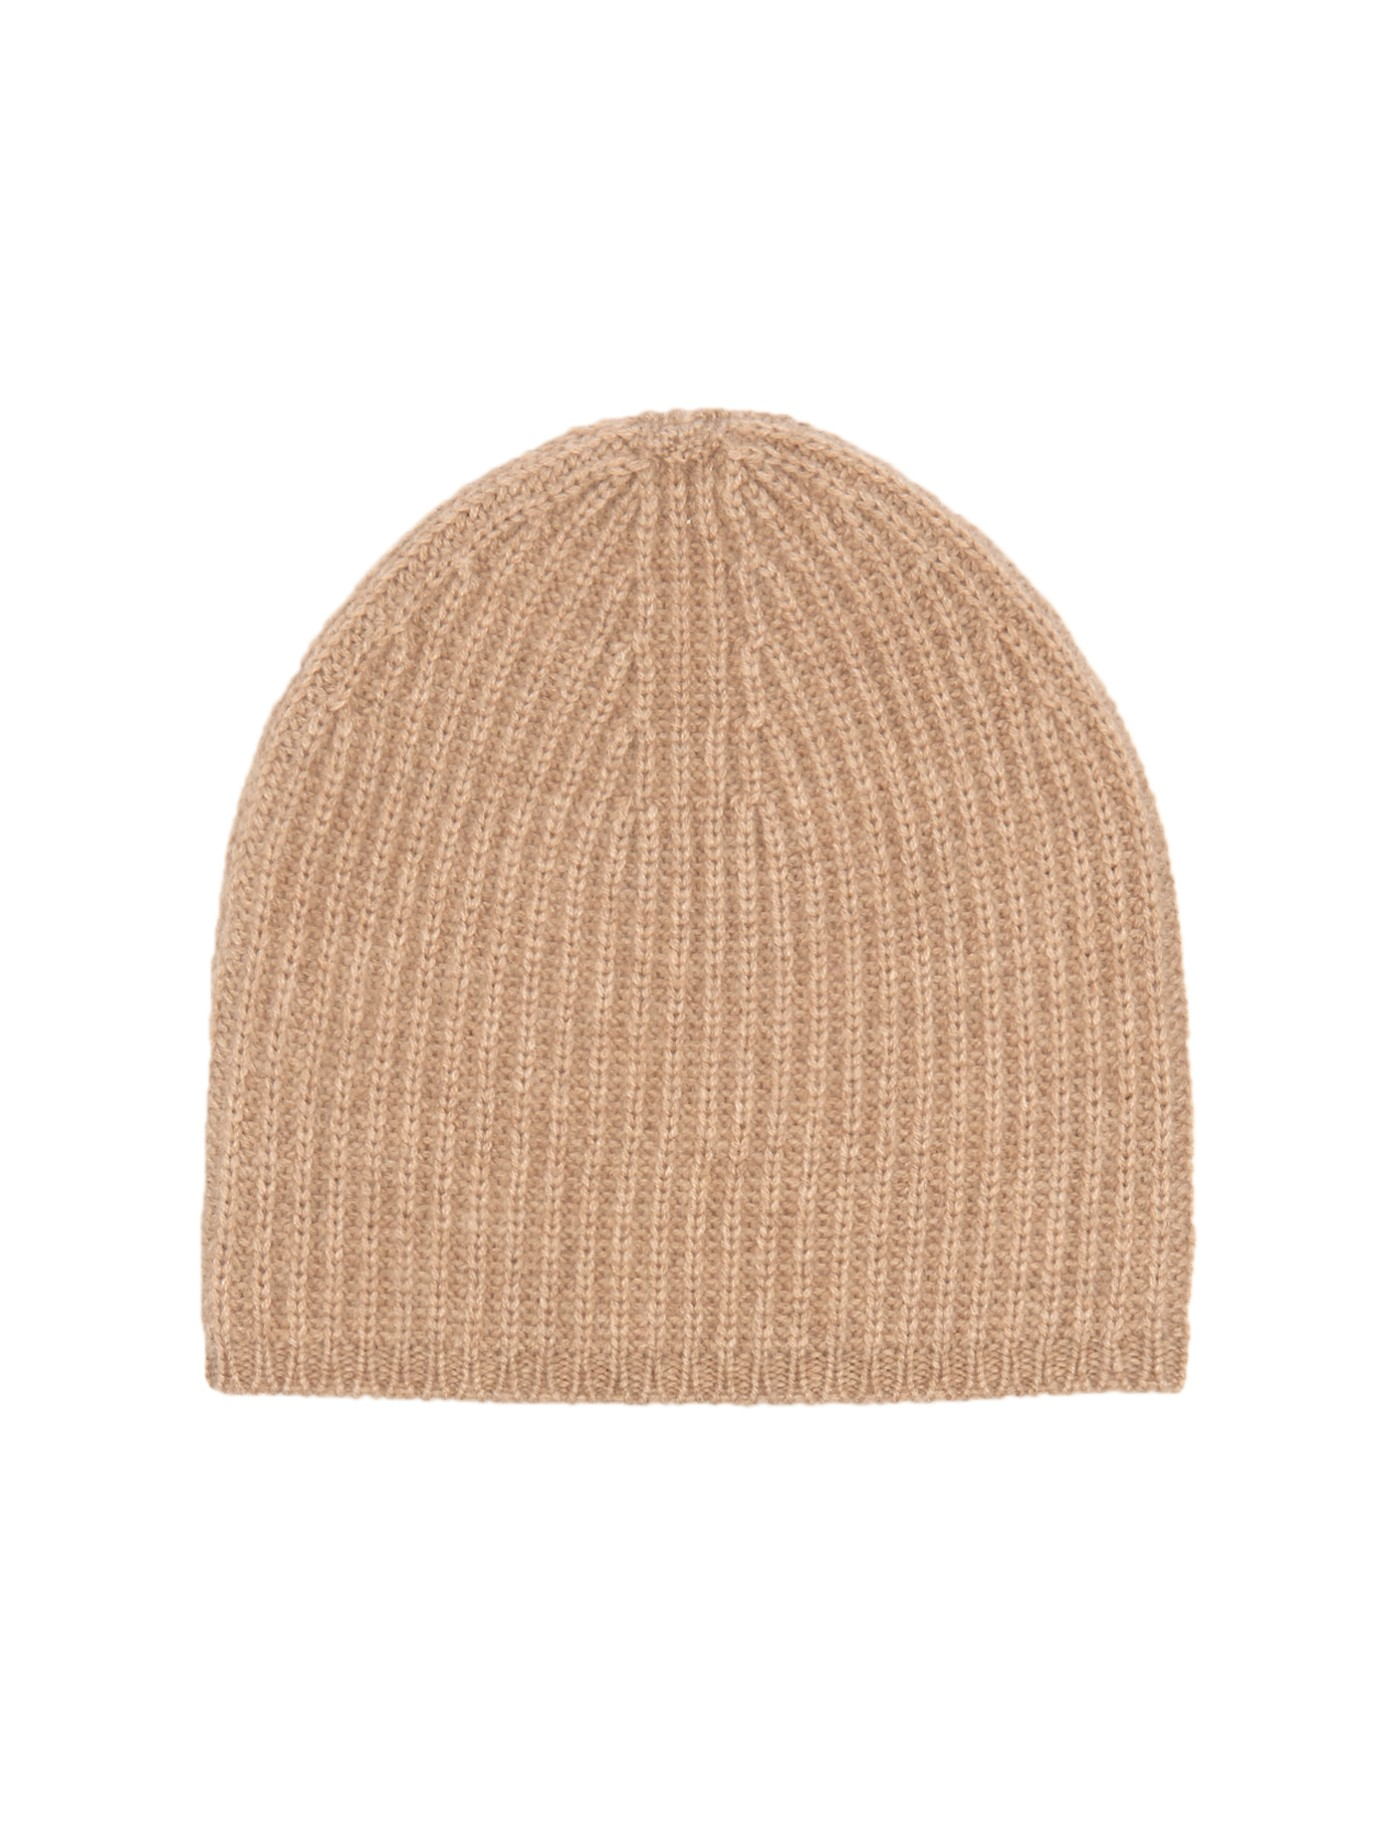 Knitting Pattern Cashmere Hat : Denis colomb Ribbed-knit Cashmere Beanie Hat in Natural Lyst